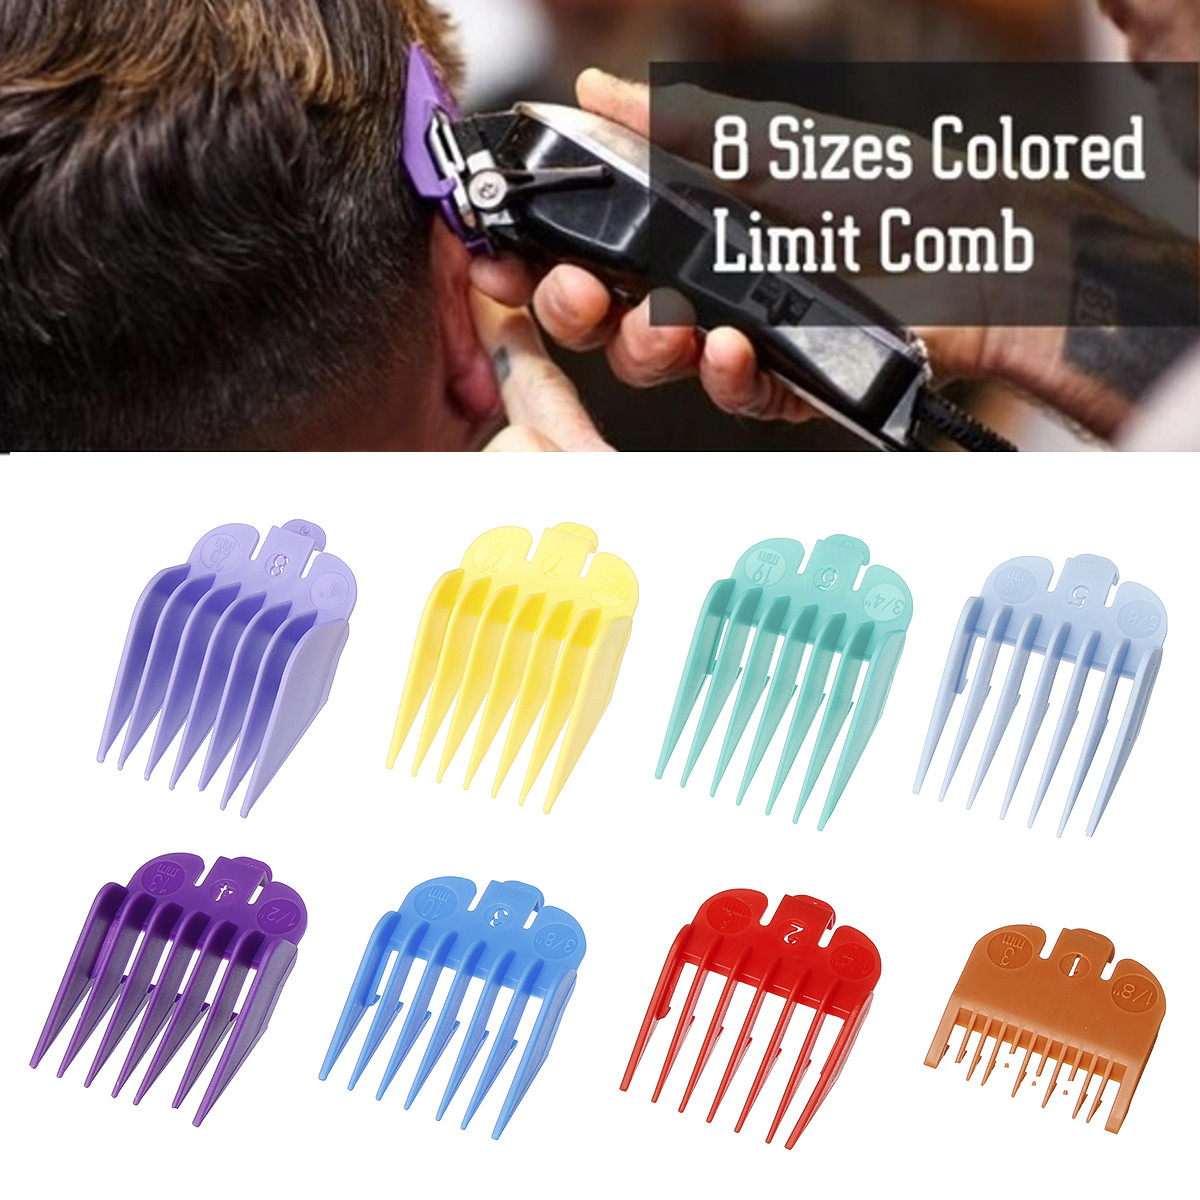 8Pcs Hair Clipper Cutting Attachment Comb Guide Limit Combs Set Replacement Tools For WAHL Machine Universal Hair Clipper Limit